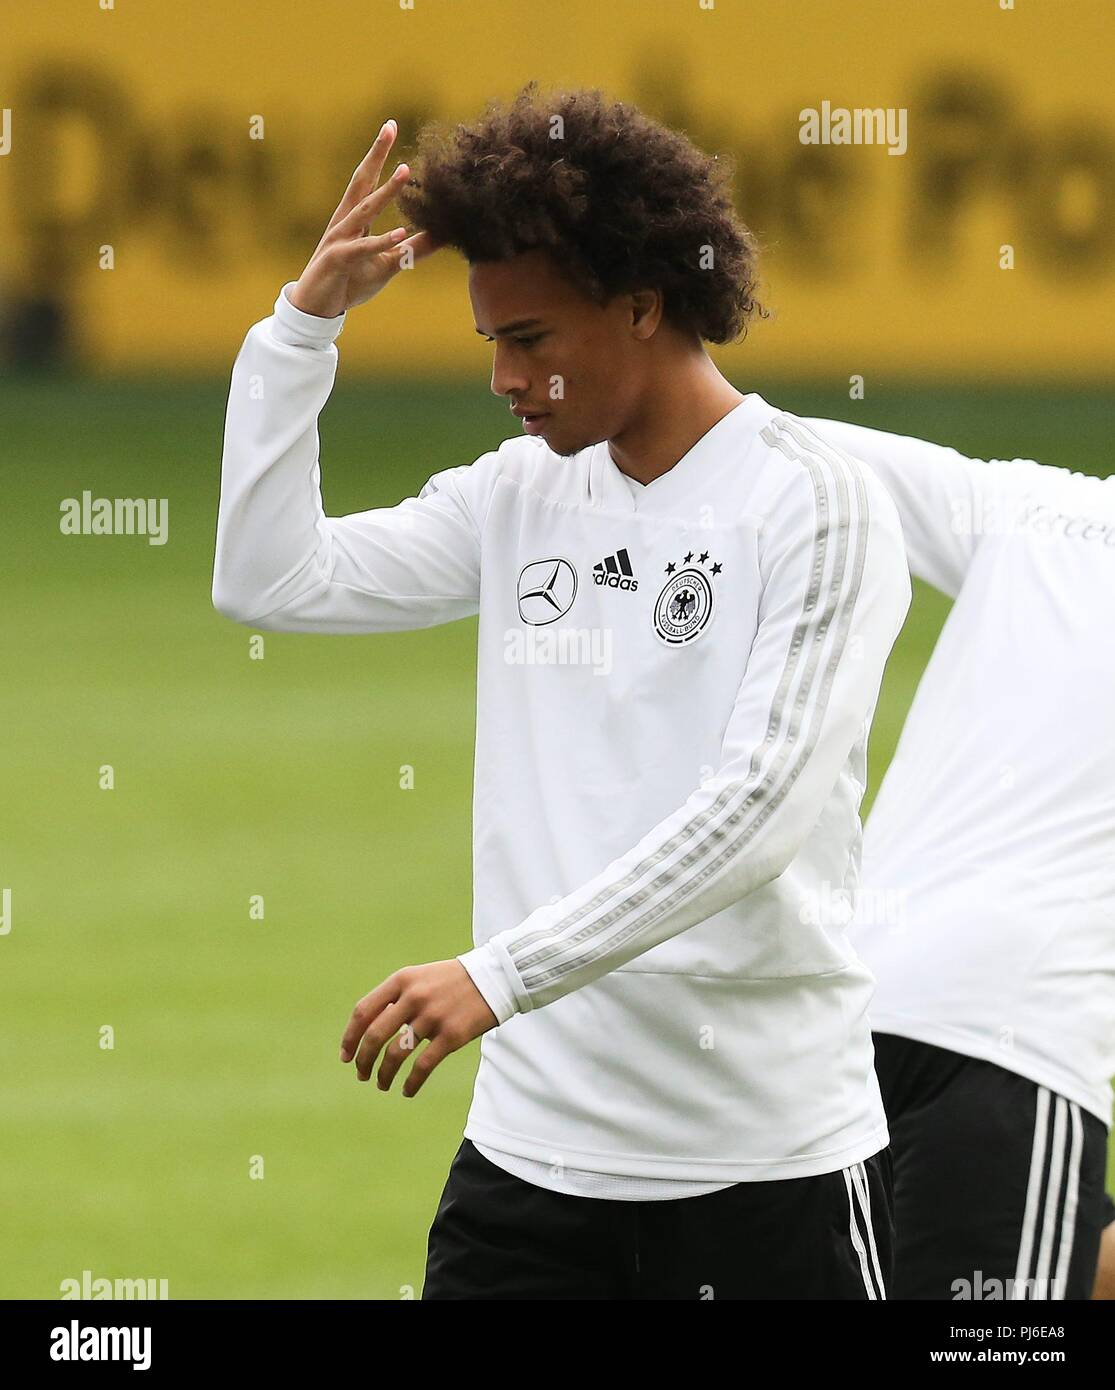 firo: 04.09.2018, Fuvuball, football, national team, training, Leroy Sane, DFB, half figure, gesture, Germany | usage worldwide - Stock Image